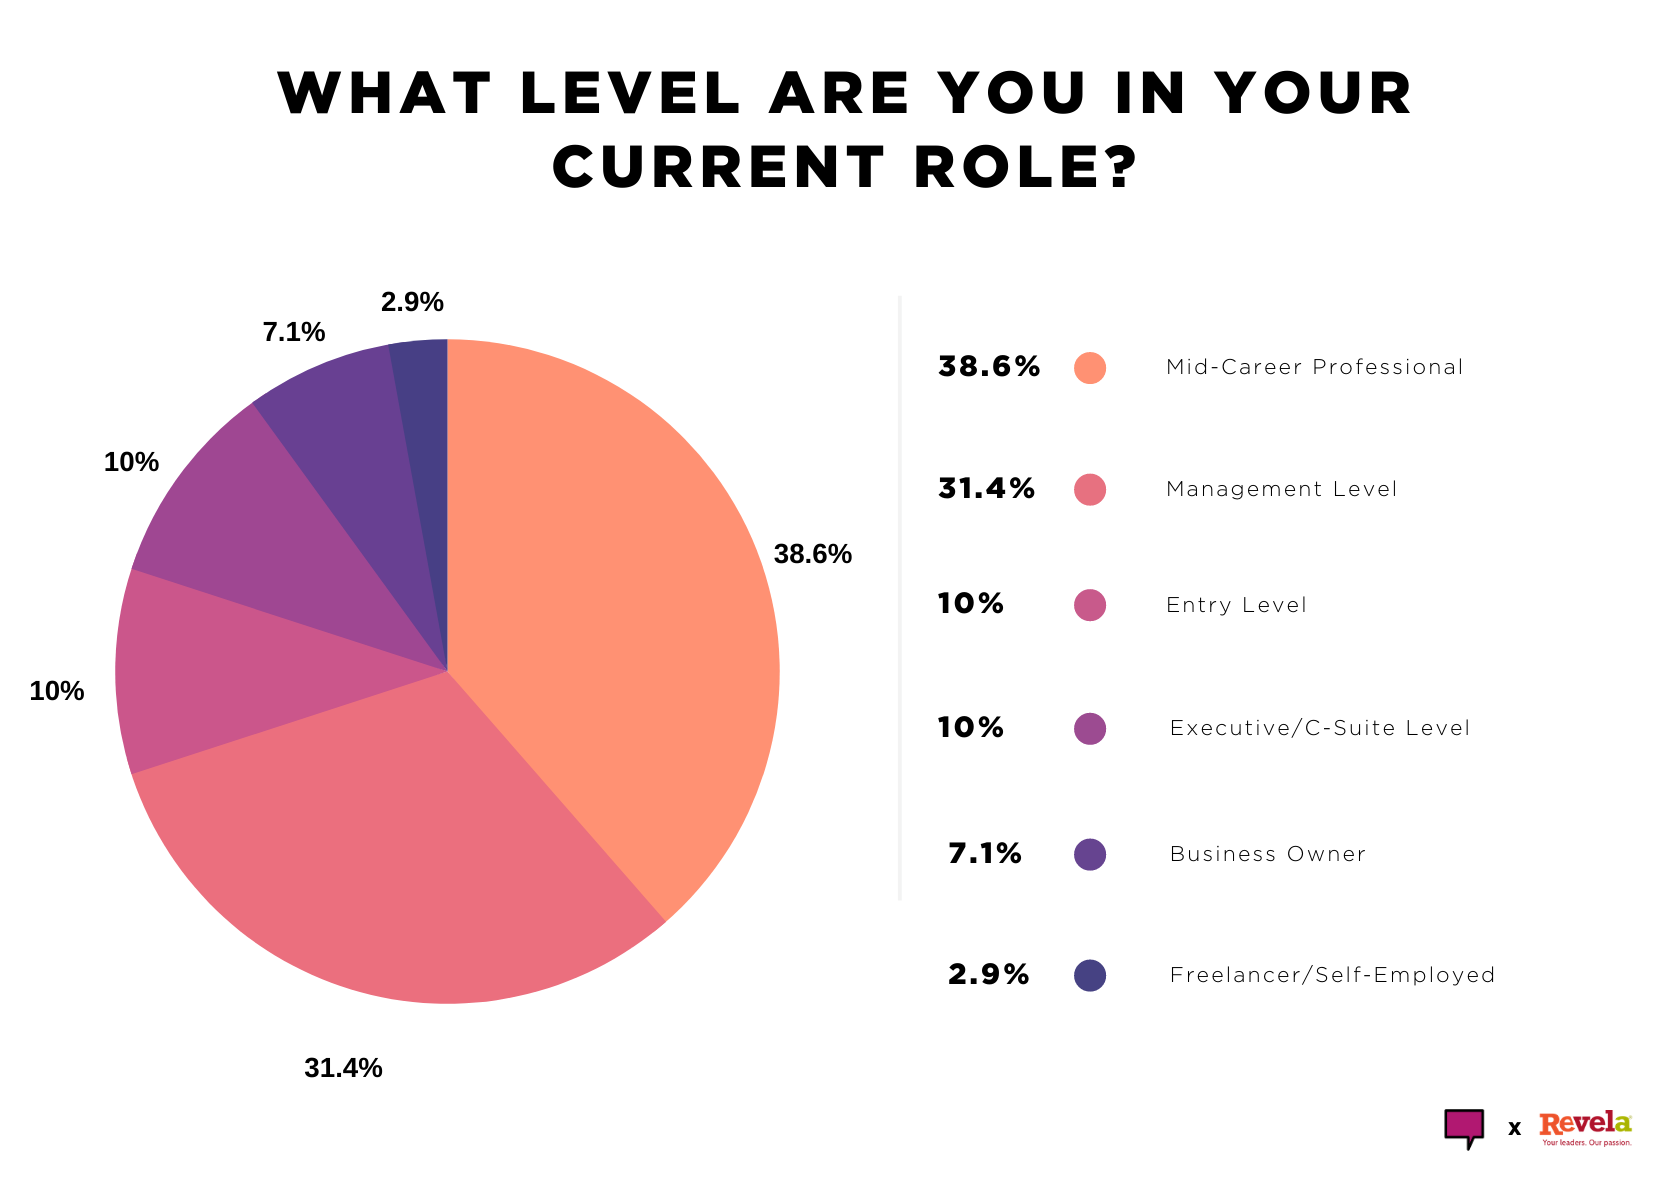 What level are you in your current role?